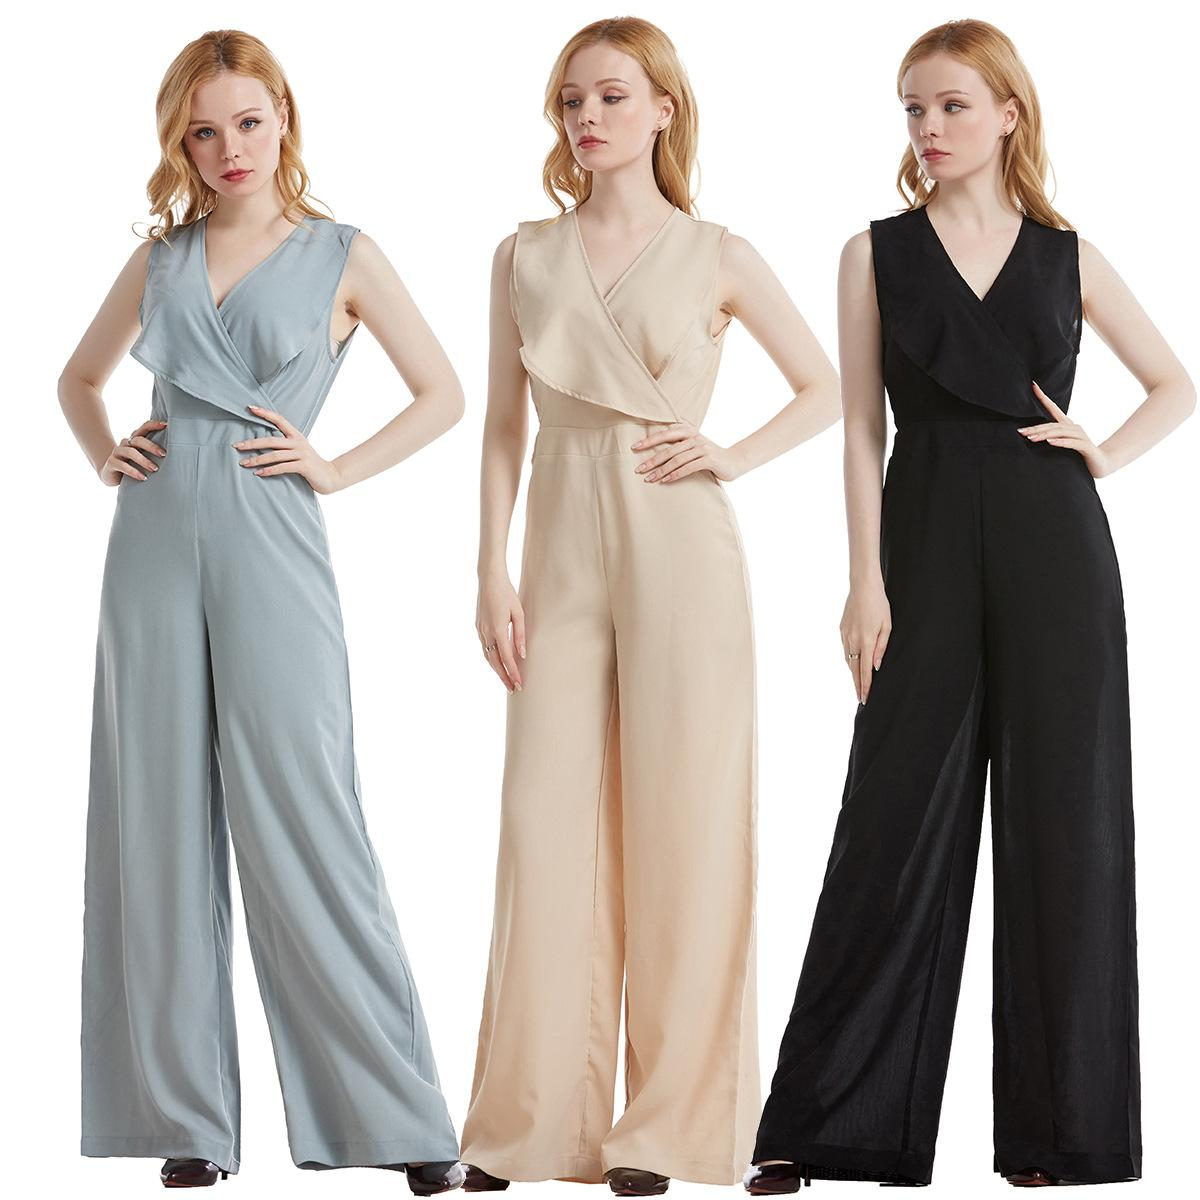 Rompers High Quality Summer New Fashion Women'S Party Vintage Chic Office Casual Sexy Official Ruffle Loose Trousers Vest Jumpsuits